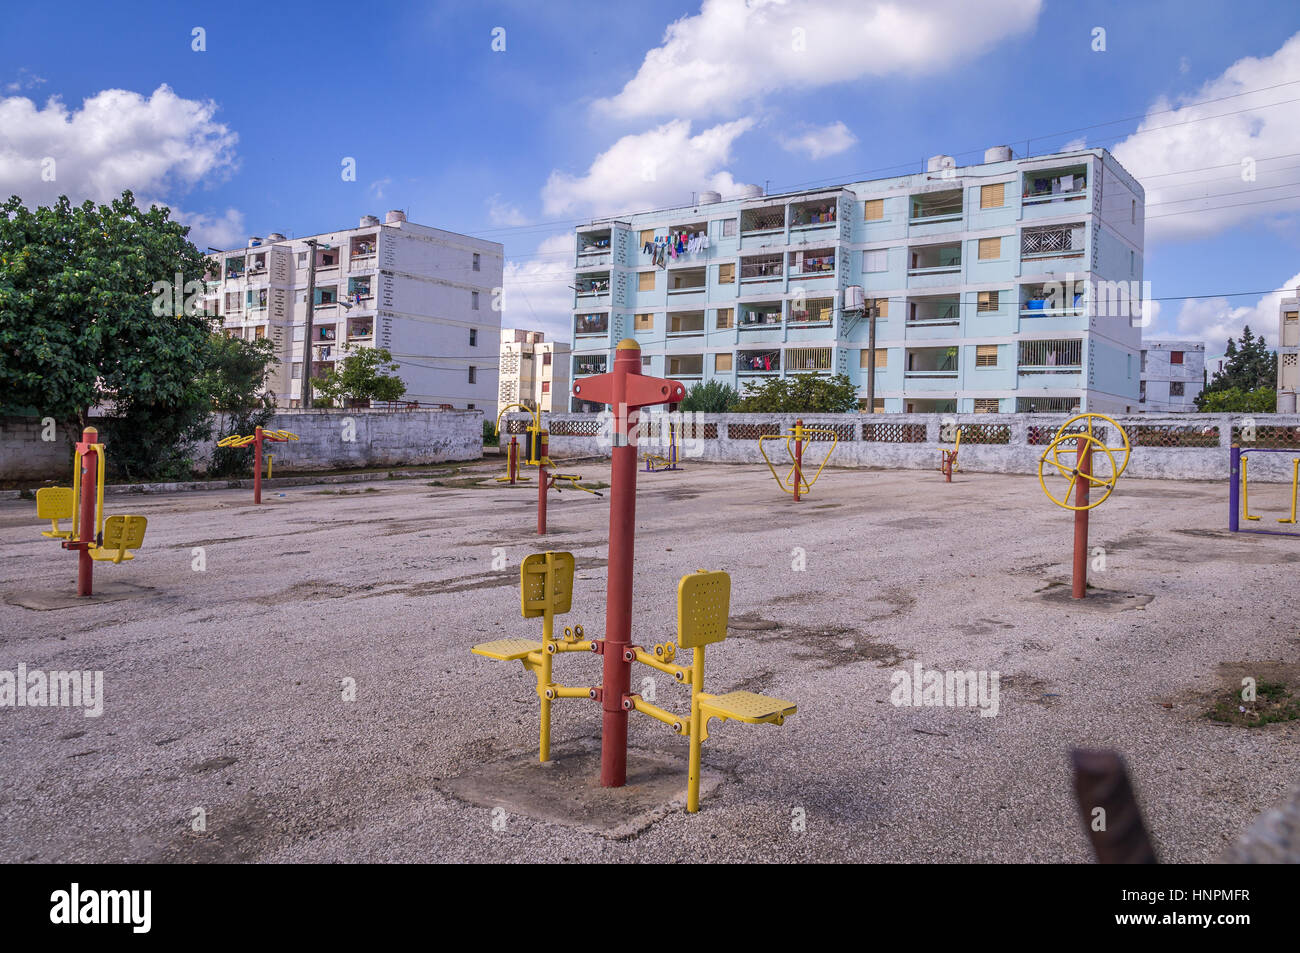 Poor residential area in Trinidad, Cuba - Stock Image